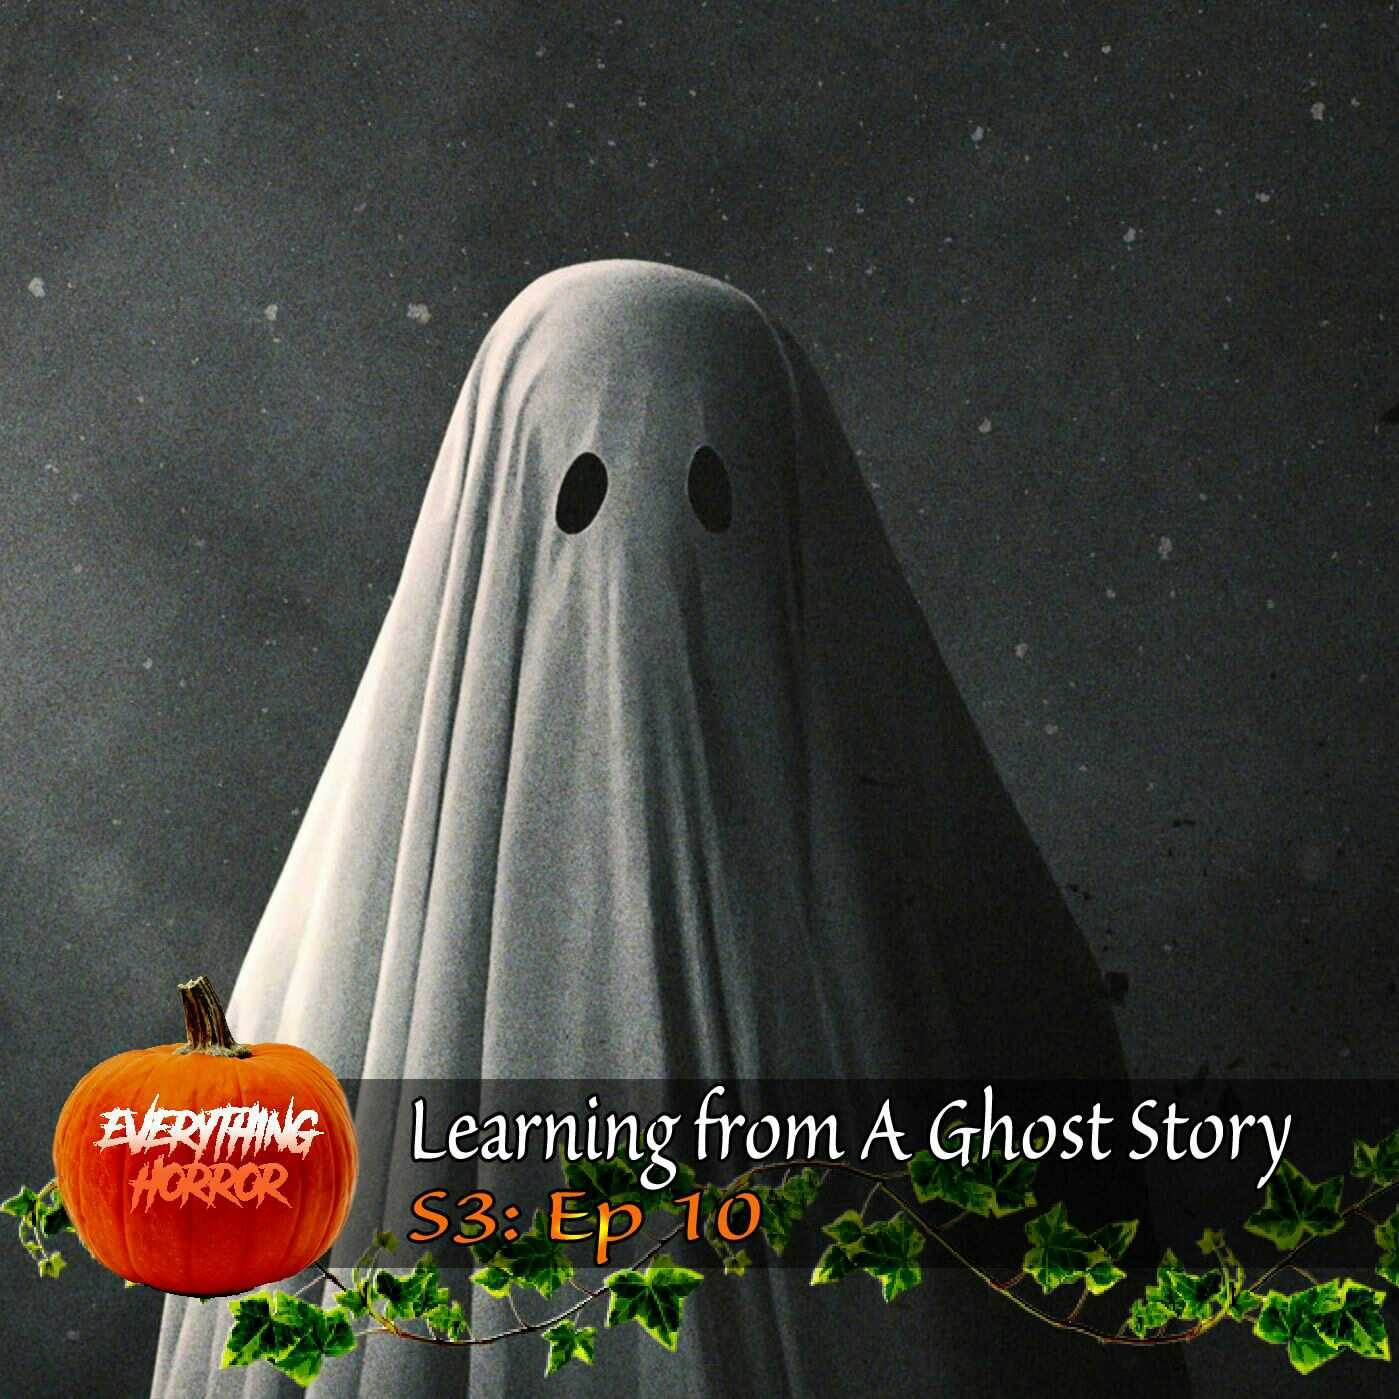 S3: Ep 10. Learning from A Ghost Story